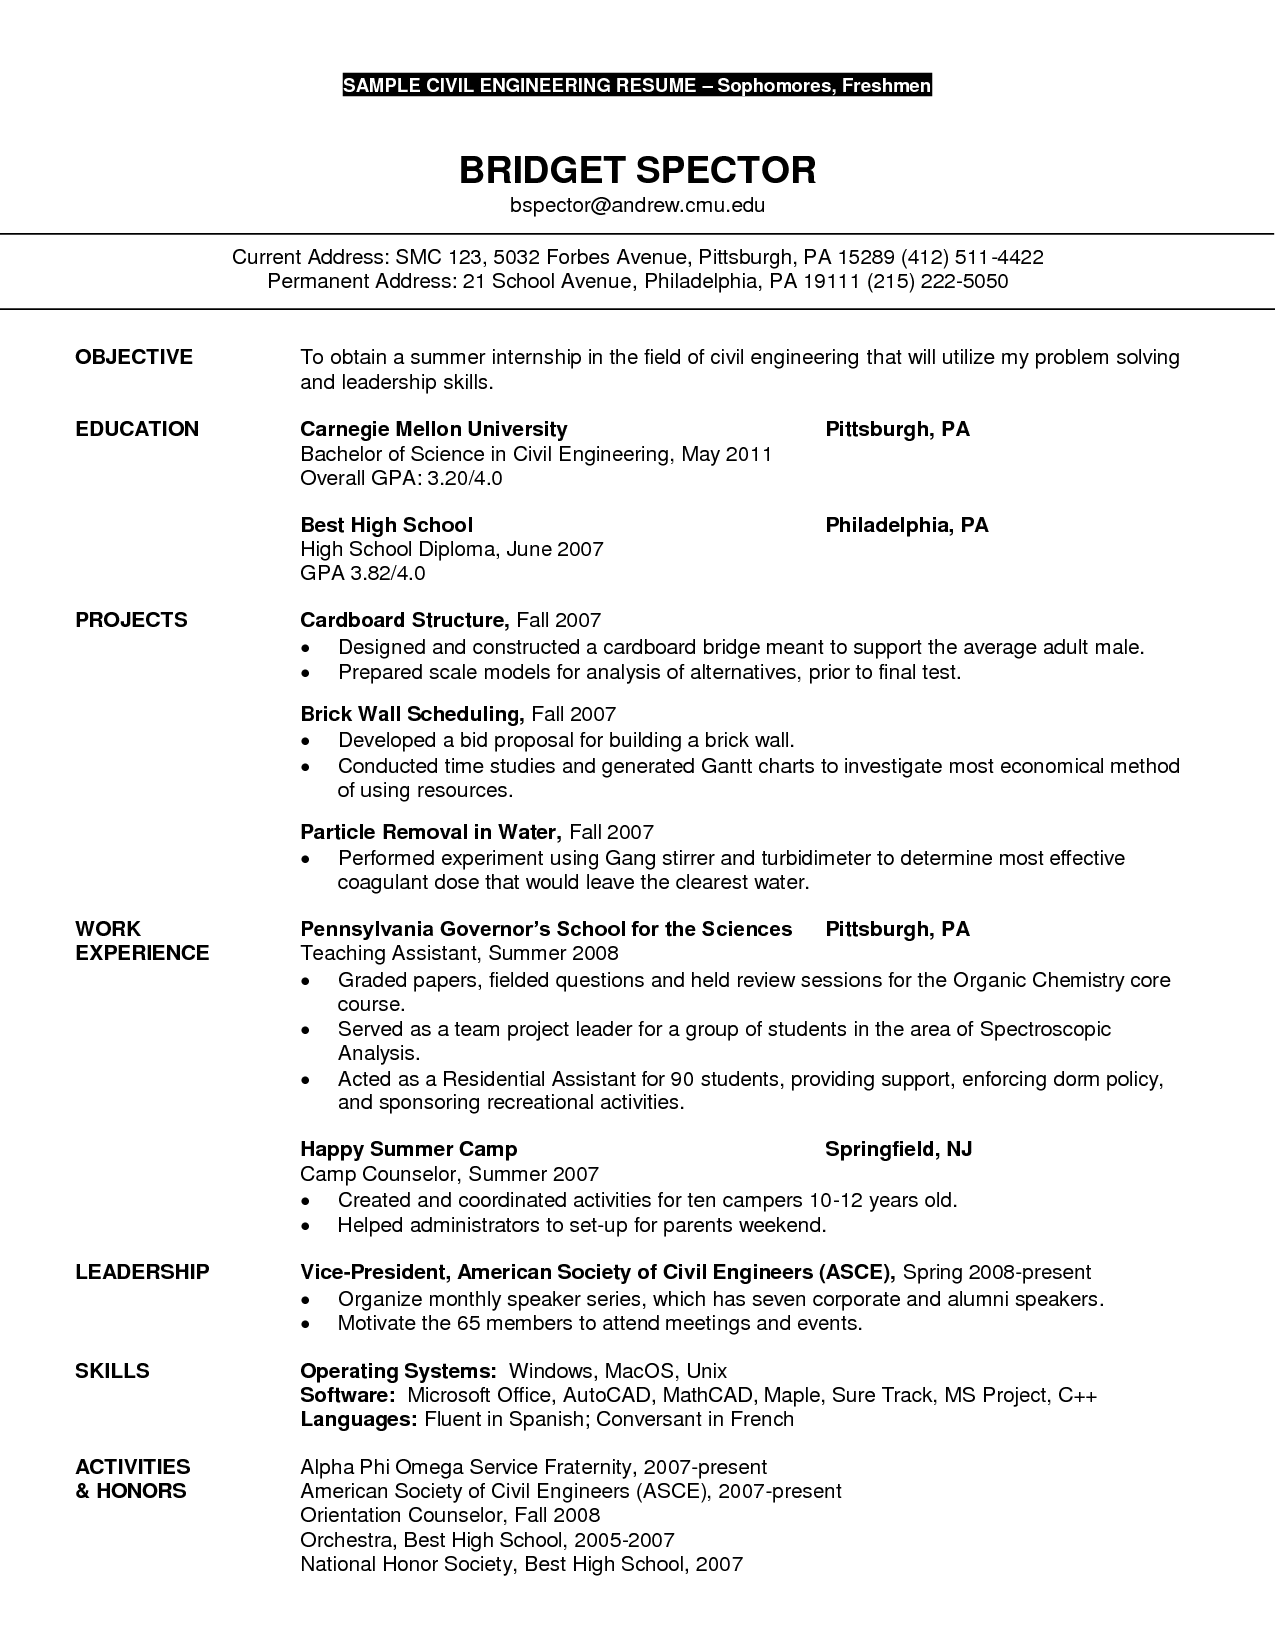 Civil engineer resume sample httpresumecareerfocivil civil engineer resume sample httpresumecareerfocivil civil engineering jobsengineering yelopaper